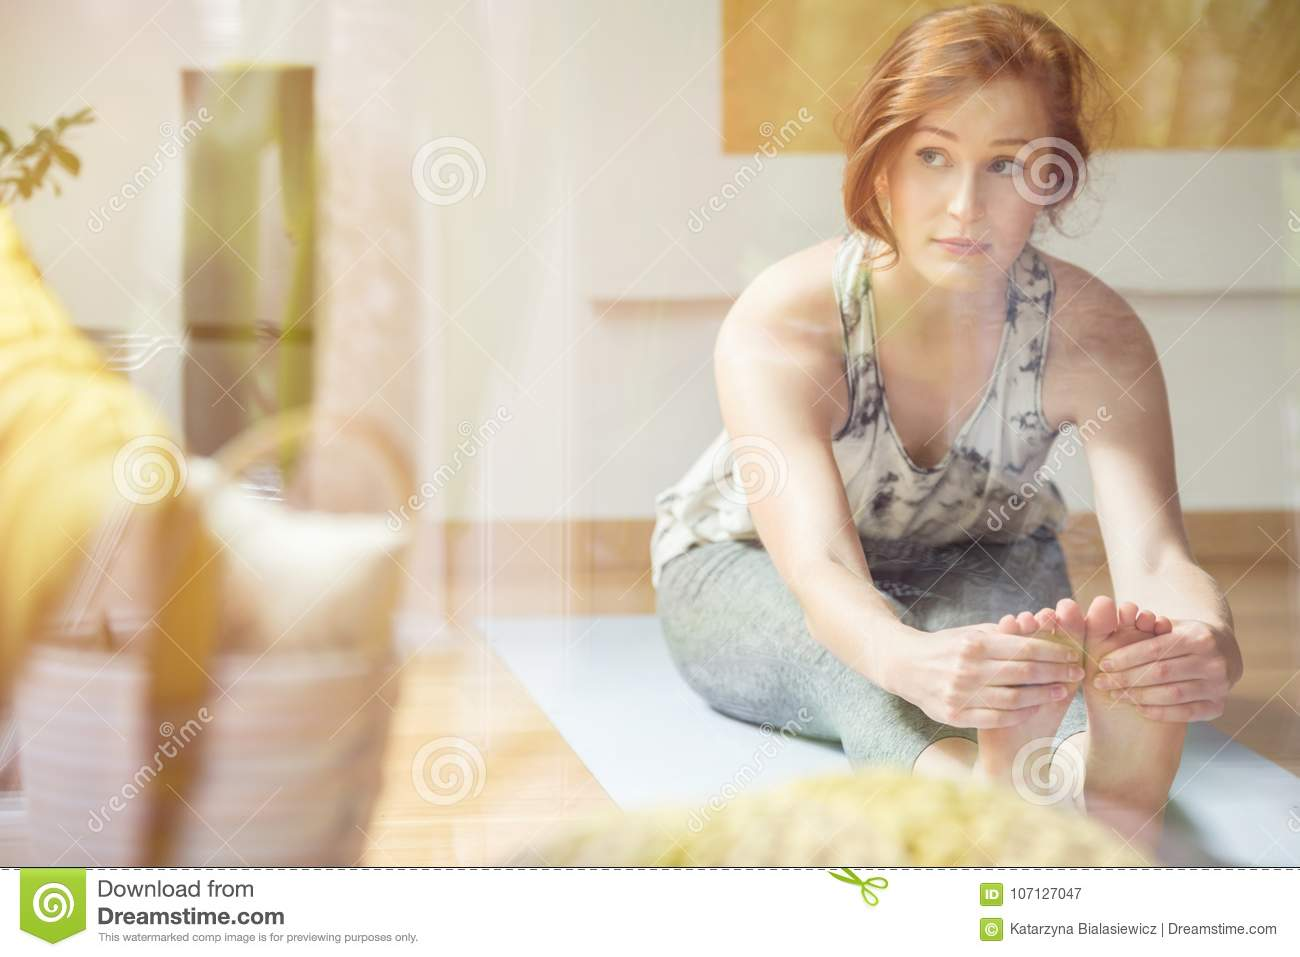 Woman exercising in bright room